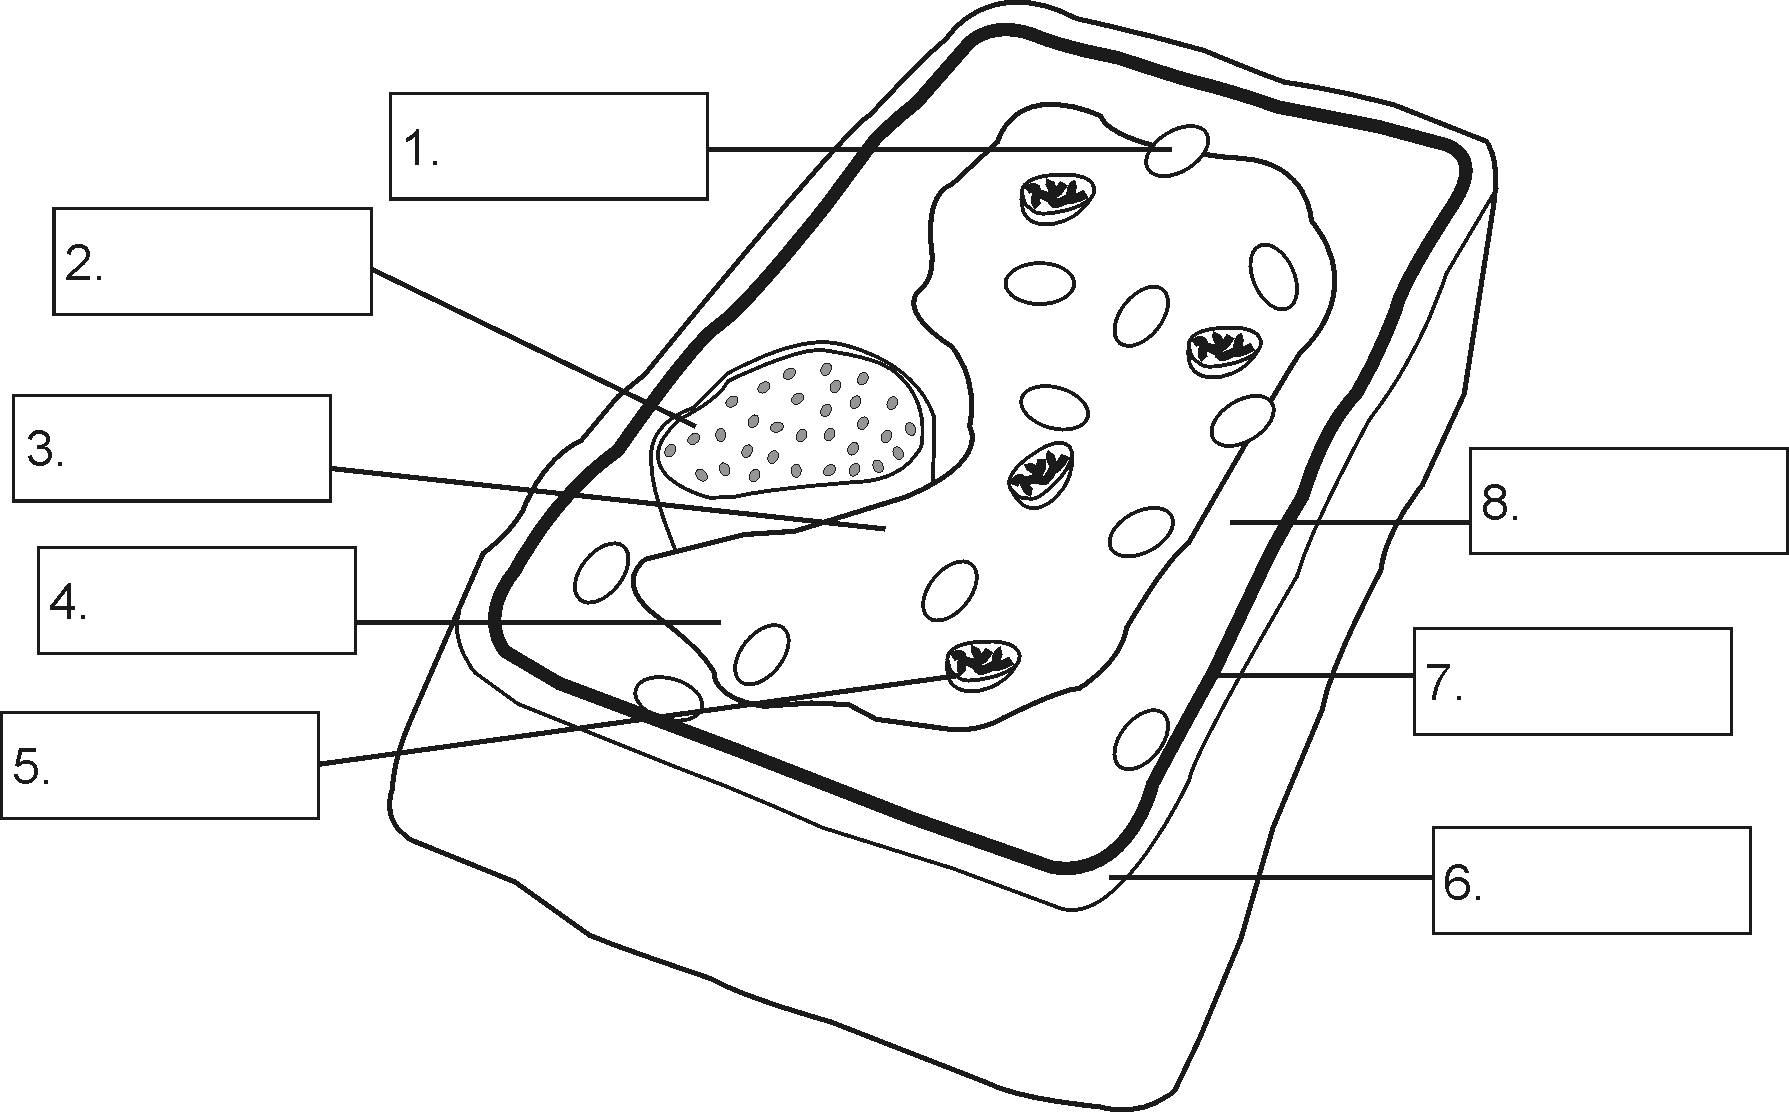 hight resolution of Plant Cell Diagram without Labels   Cell diagram